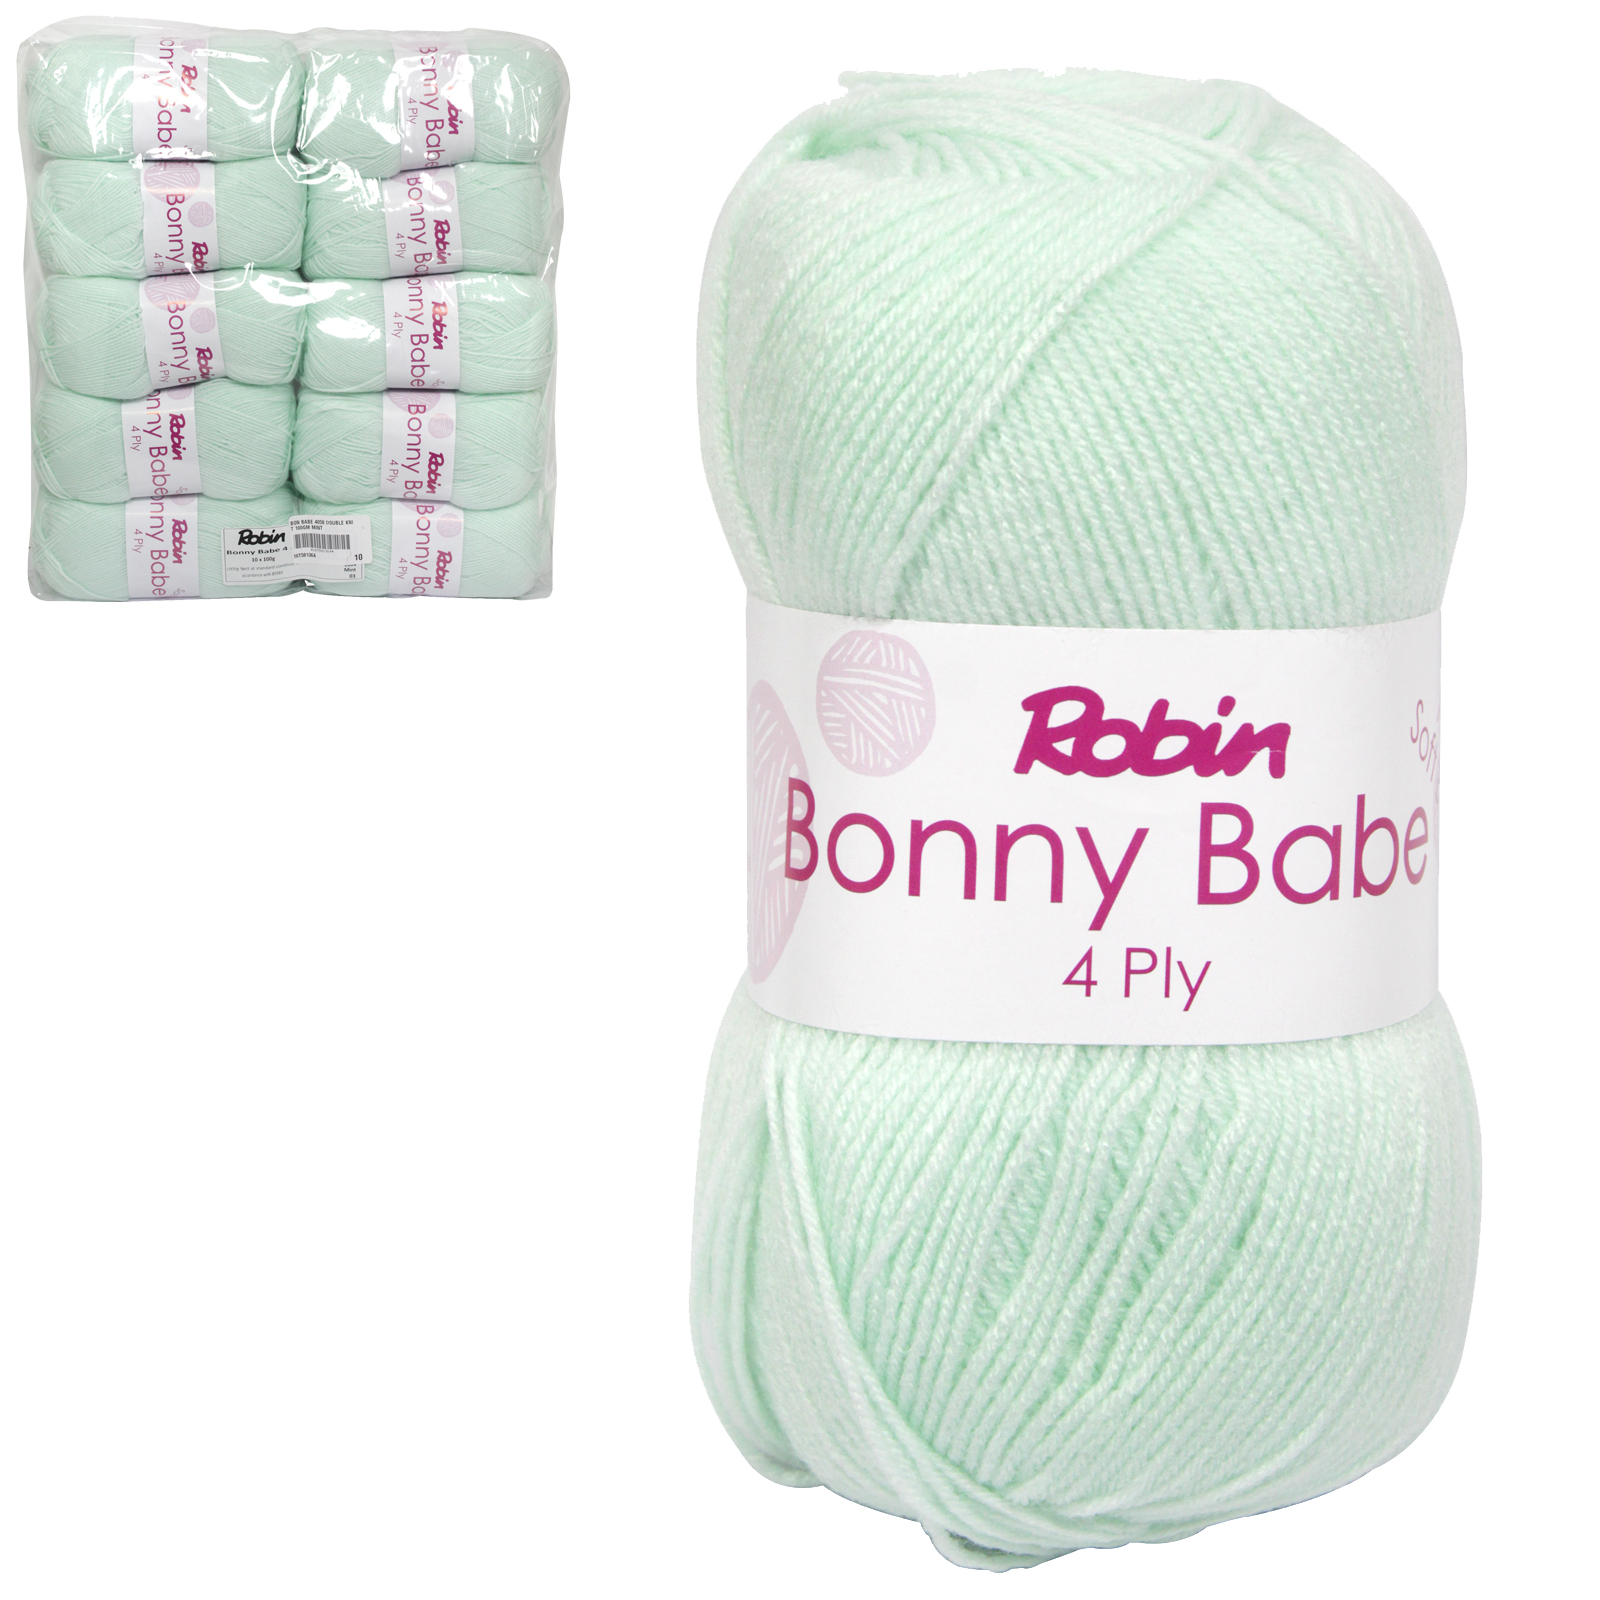 ROBIN BONNY BABE 4058 DOUBLE KNIT WOOL WEIGHT 100GM LENGTH 300M MINT X10